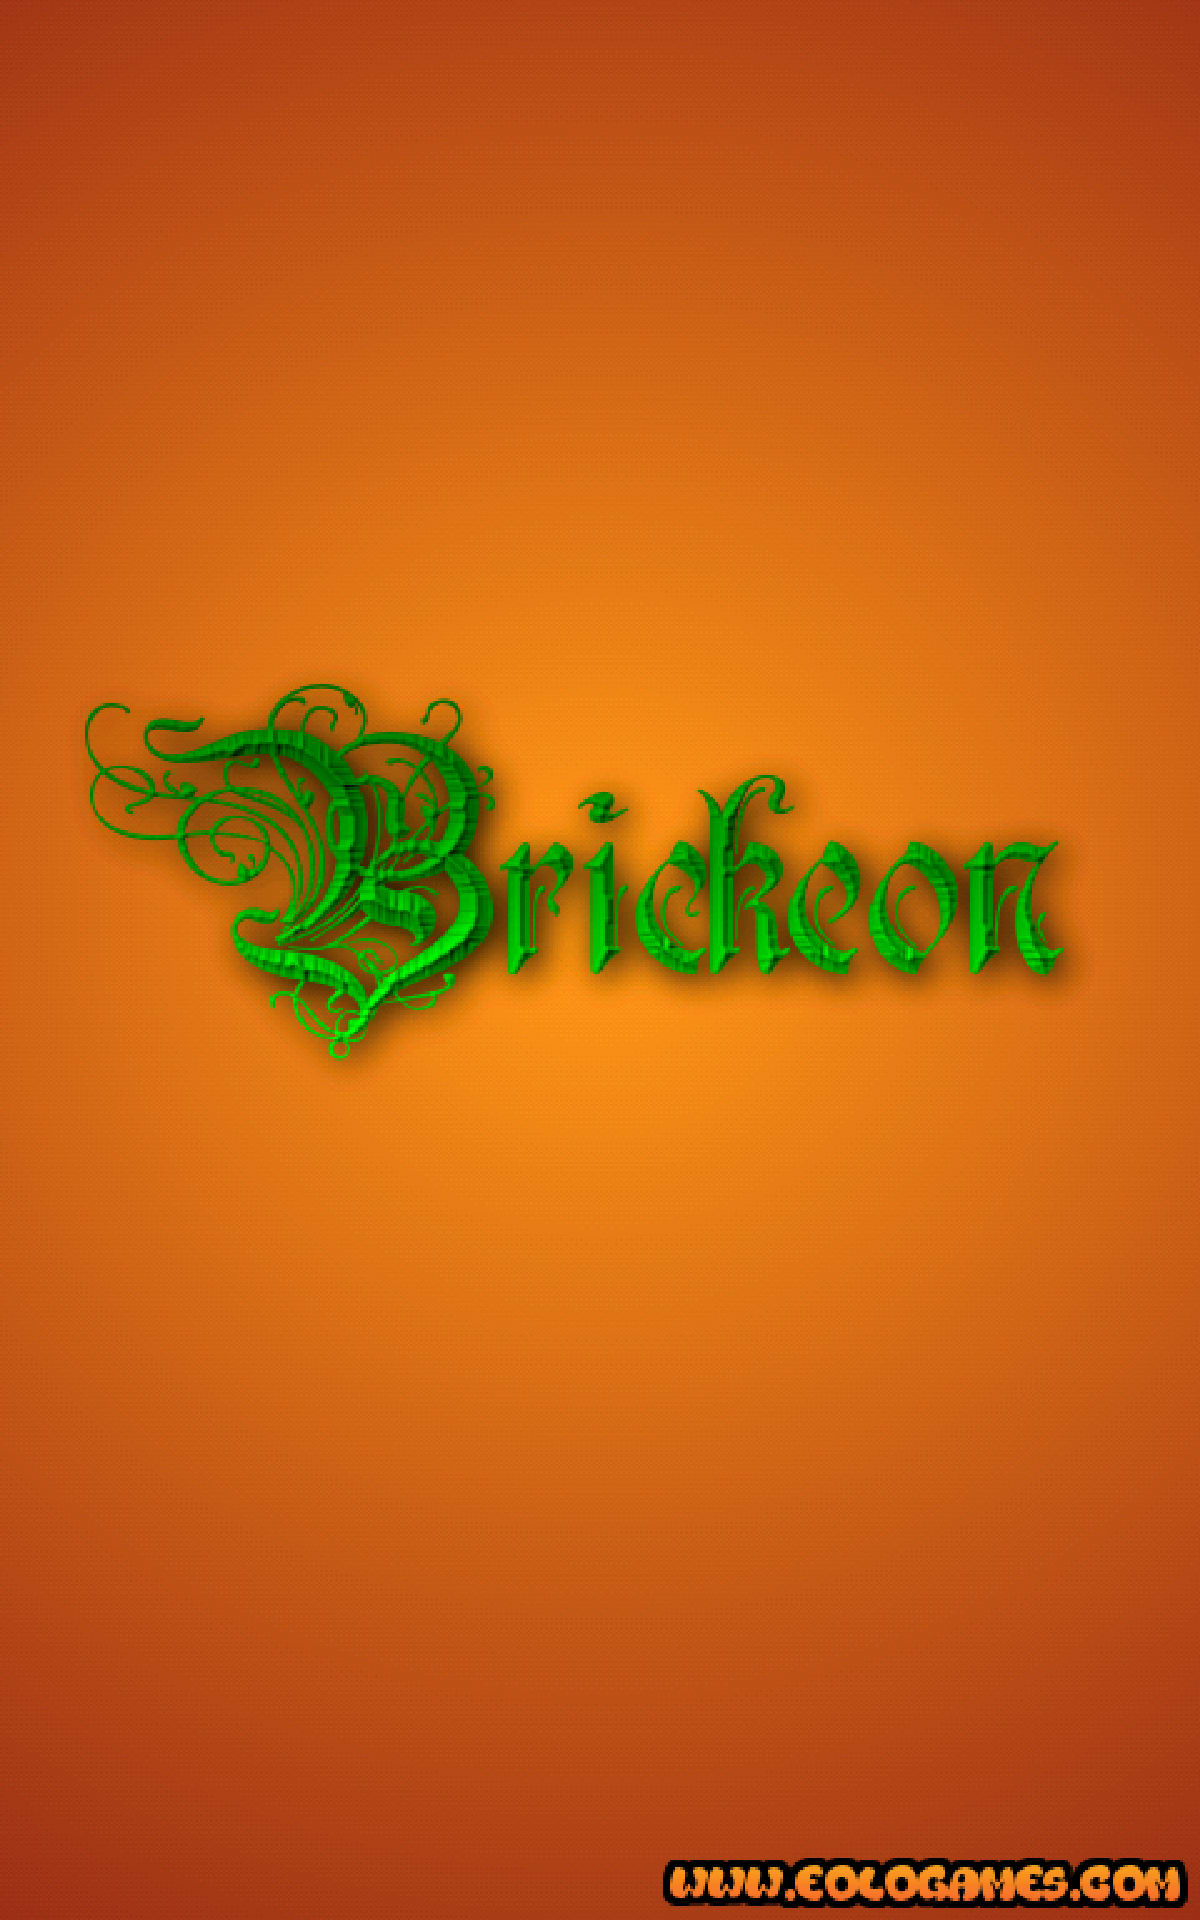 Brickeon - Brick Breaker Game